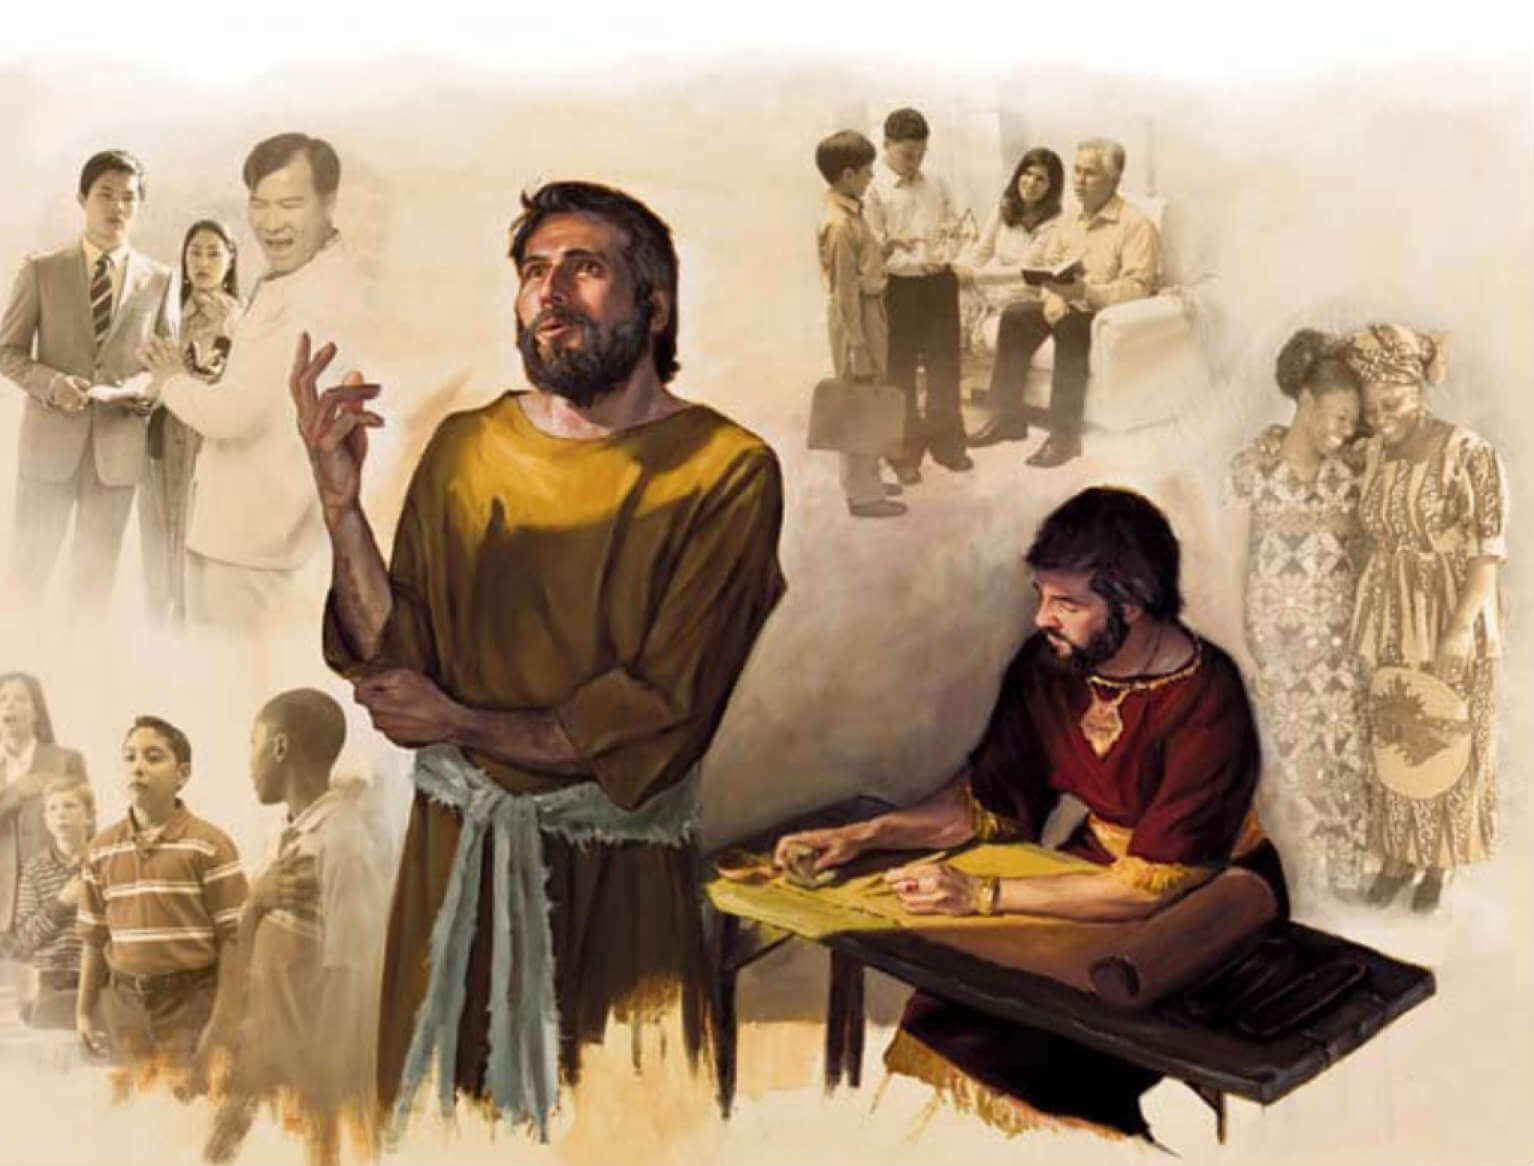 Jeremiah dictating to his secretary - Watchtower image